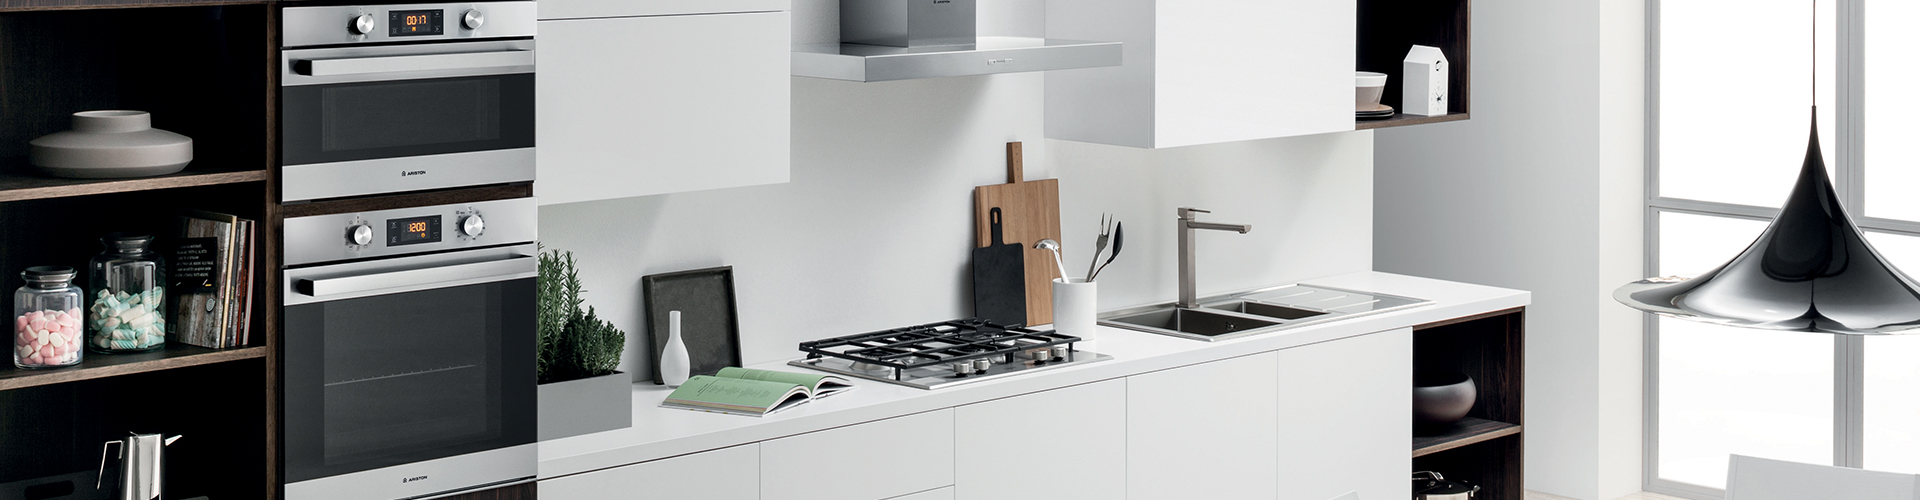 Ariston Display Kitchen with Cooktops, Rangehood and Built in Oven